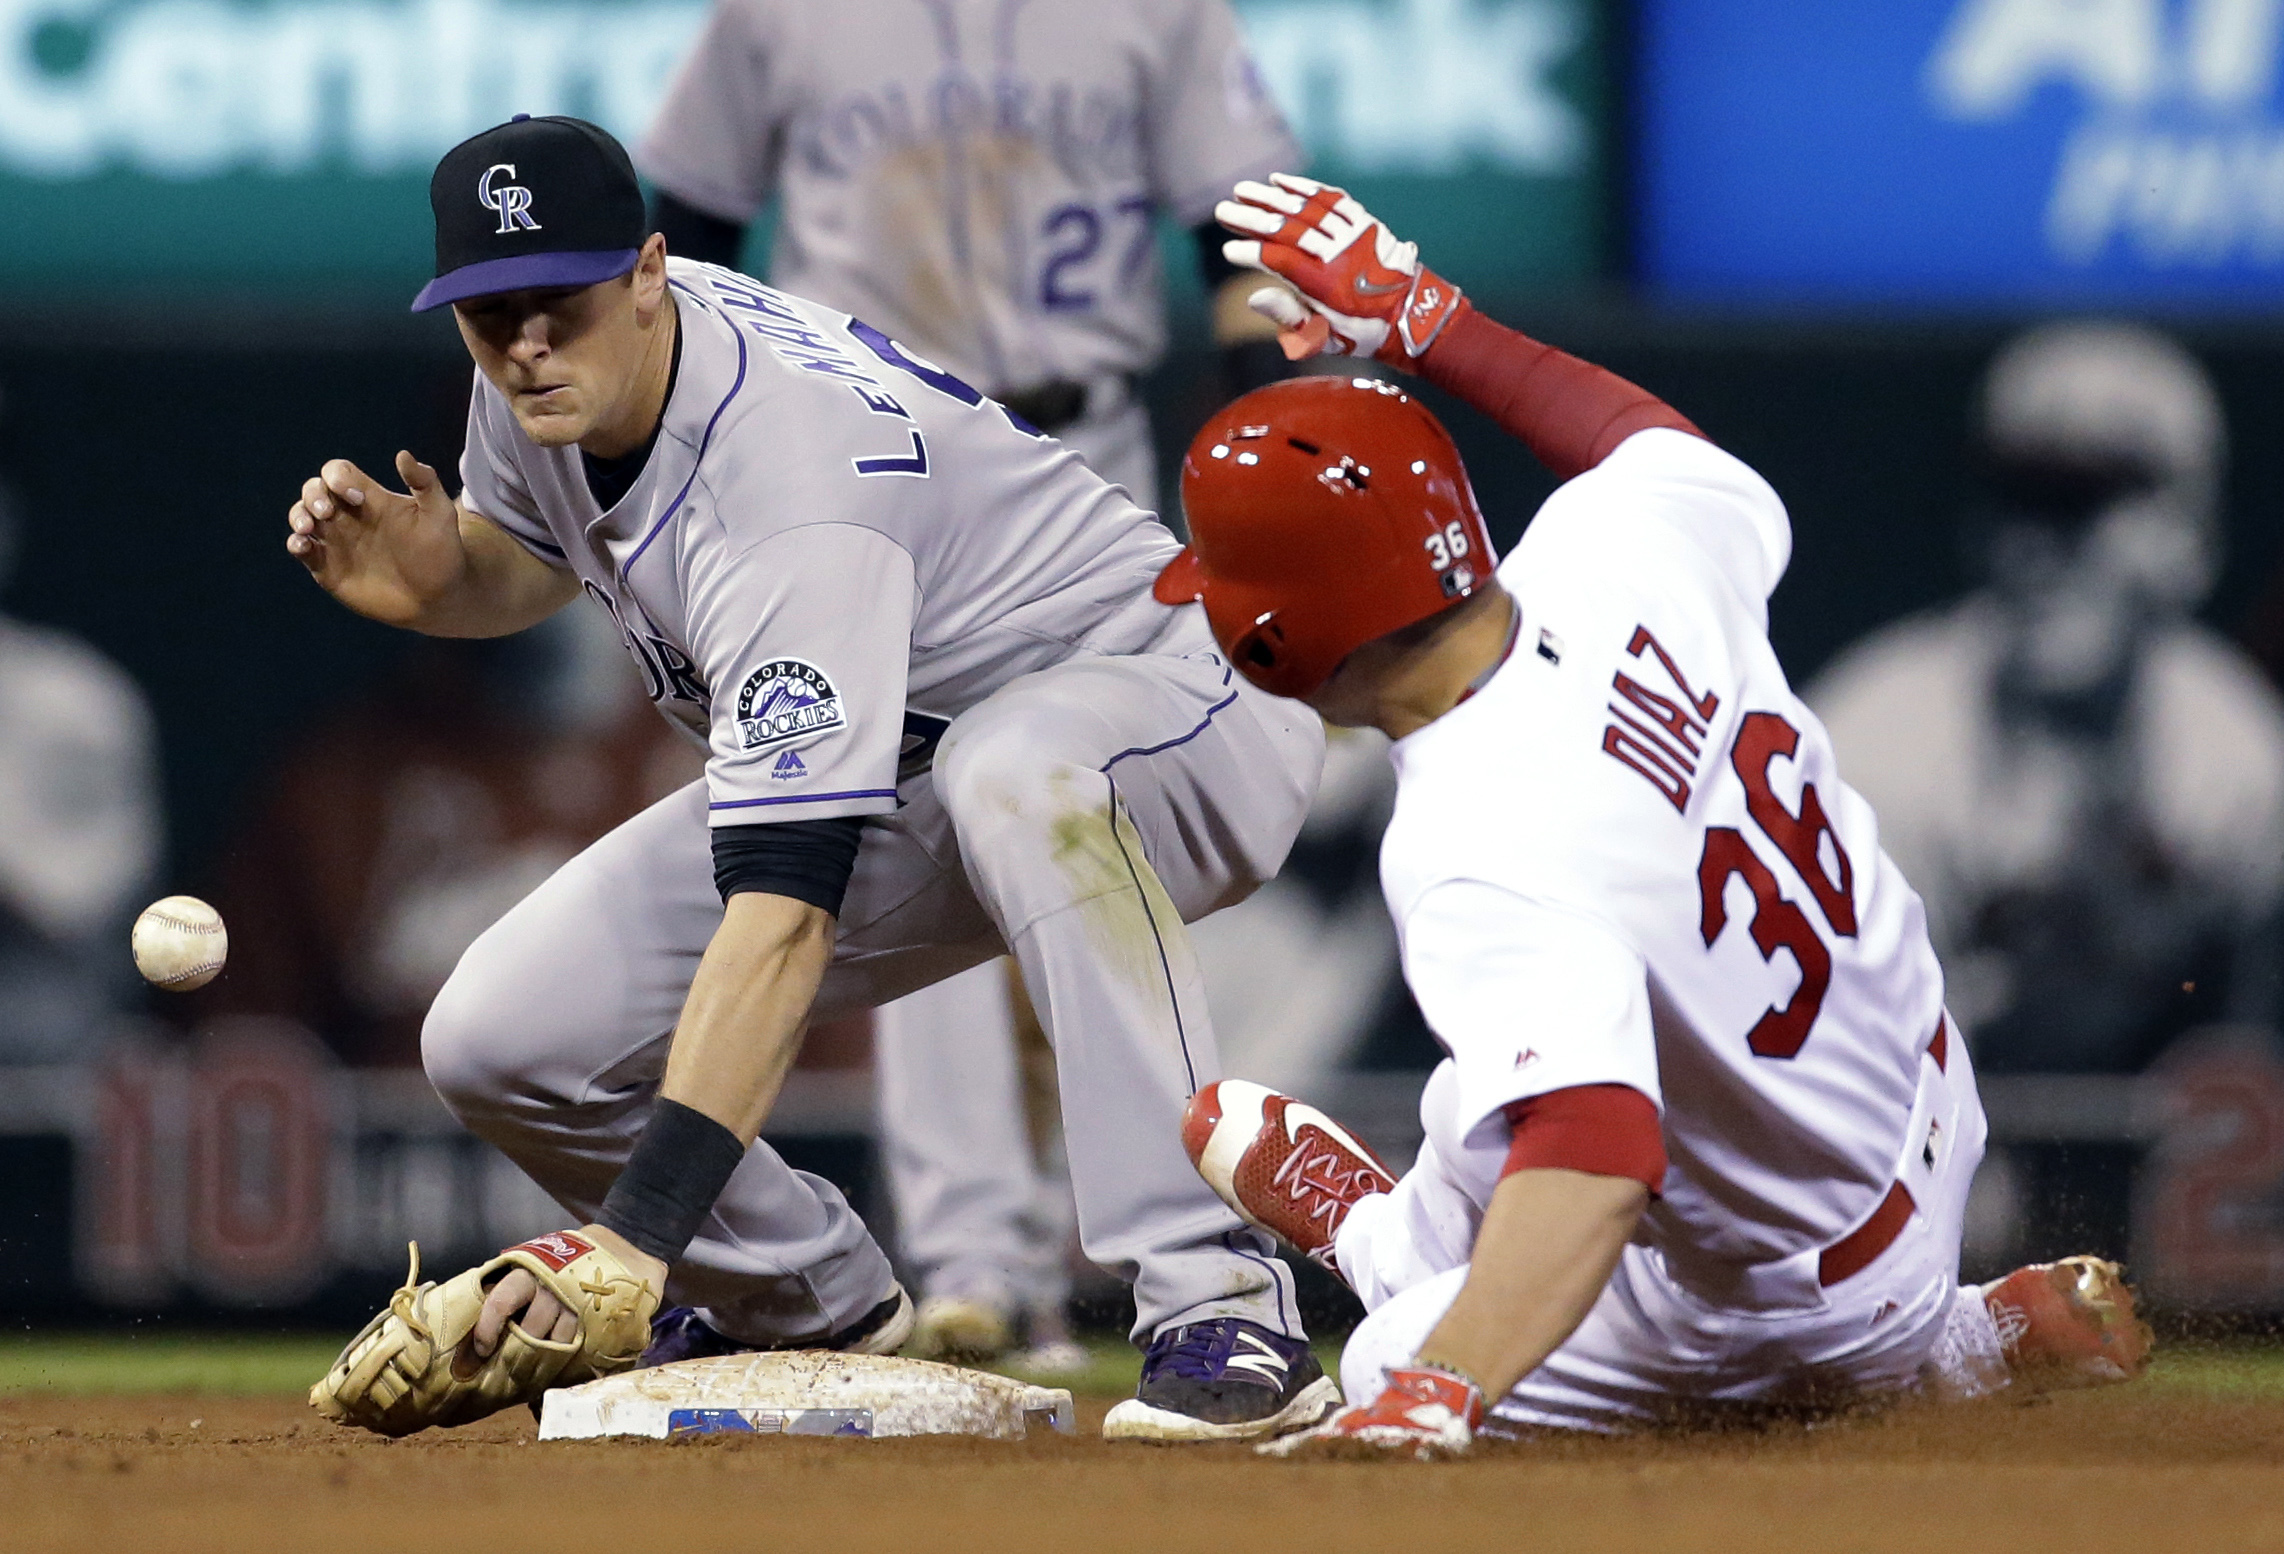 St. Louis Cardinals' Aledmys Diaz, right, is safe at second for a double as the throw gets away from Colorado Rockies second baseman DJ LeMahieu during the sixth inning of a baseball game Wednesday, May 18, 2016, in St. Louis. (AP Photo/Jeff Roberson)